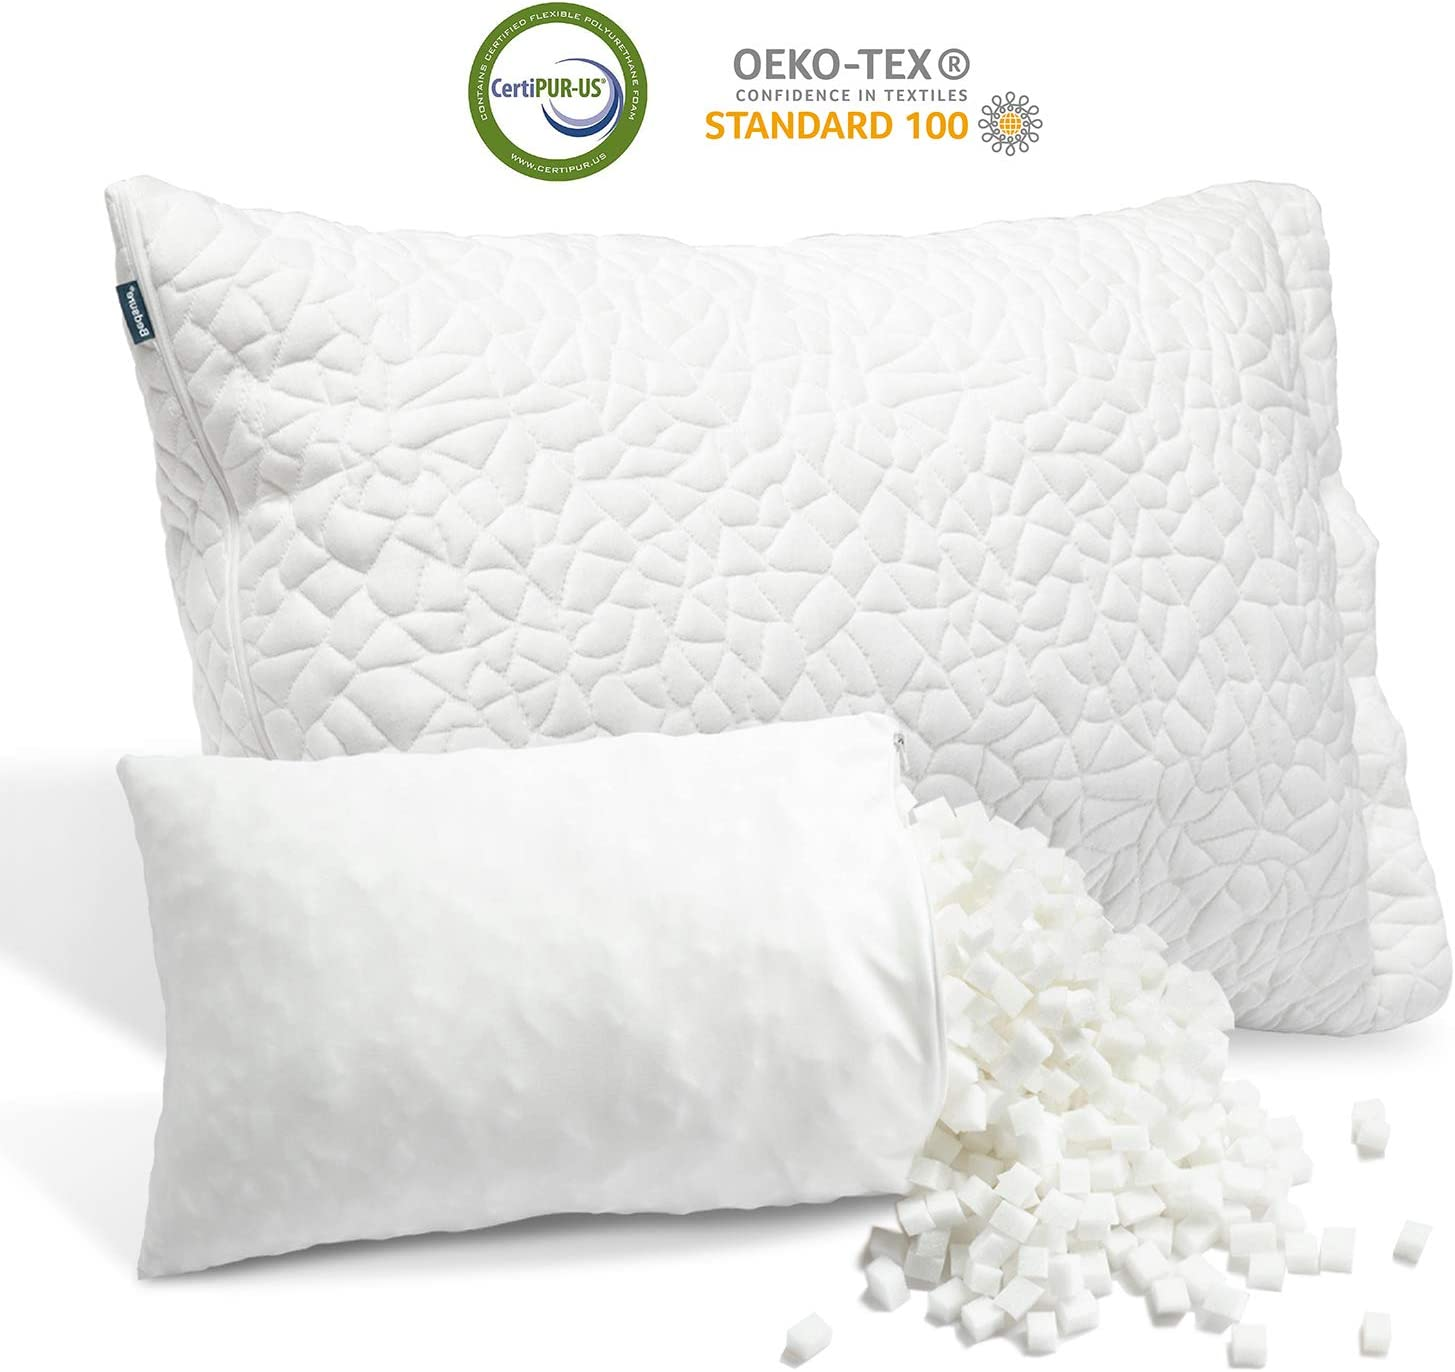 Bedsure Bamboo Shredded Memory Foam Pillow for Sleeping, with Extra Filling and Washable Cooling Cover, Adjustable Loft Pillow for Stomach Side Back Sleepers, CertiPUR-US Certified(Queen Size)